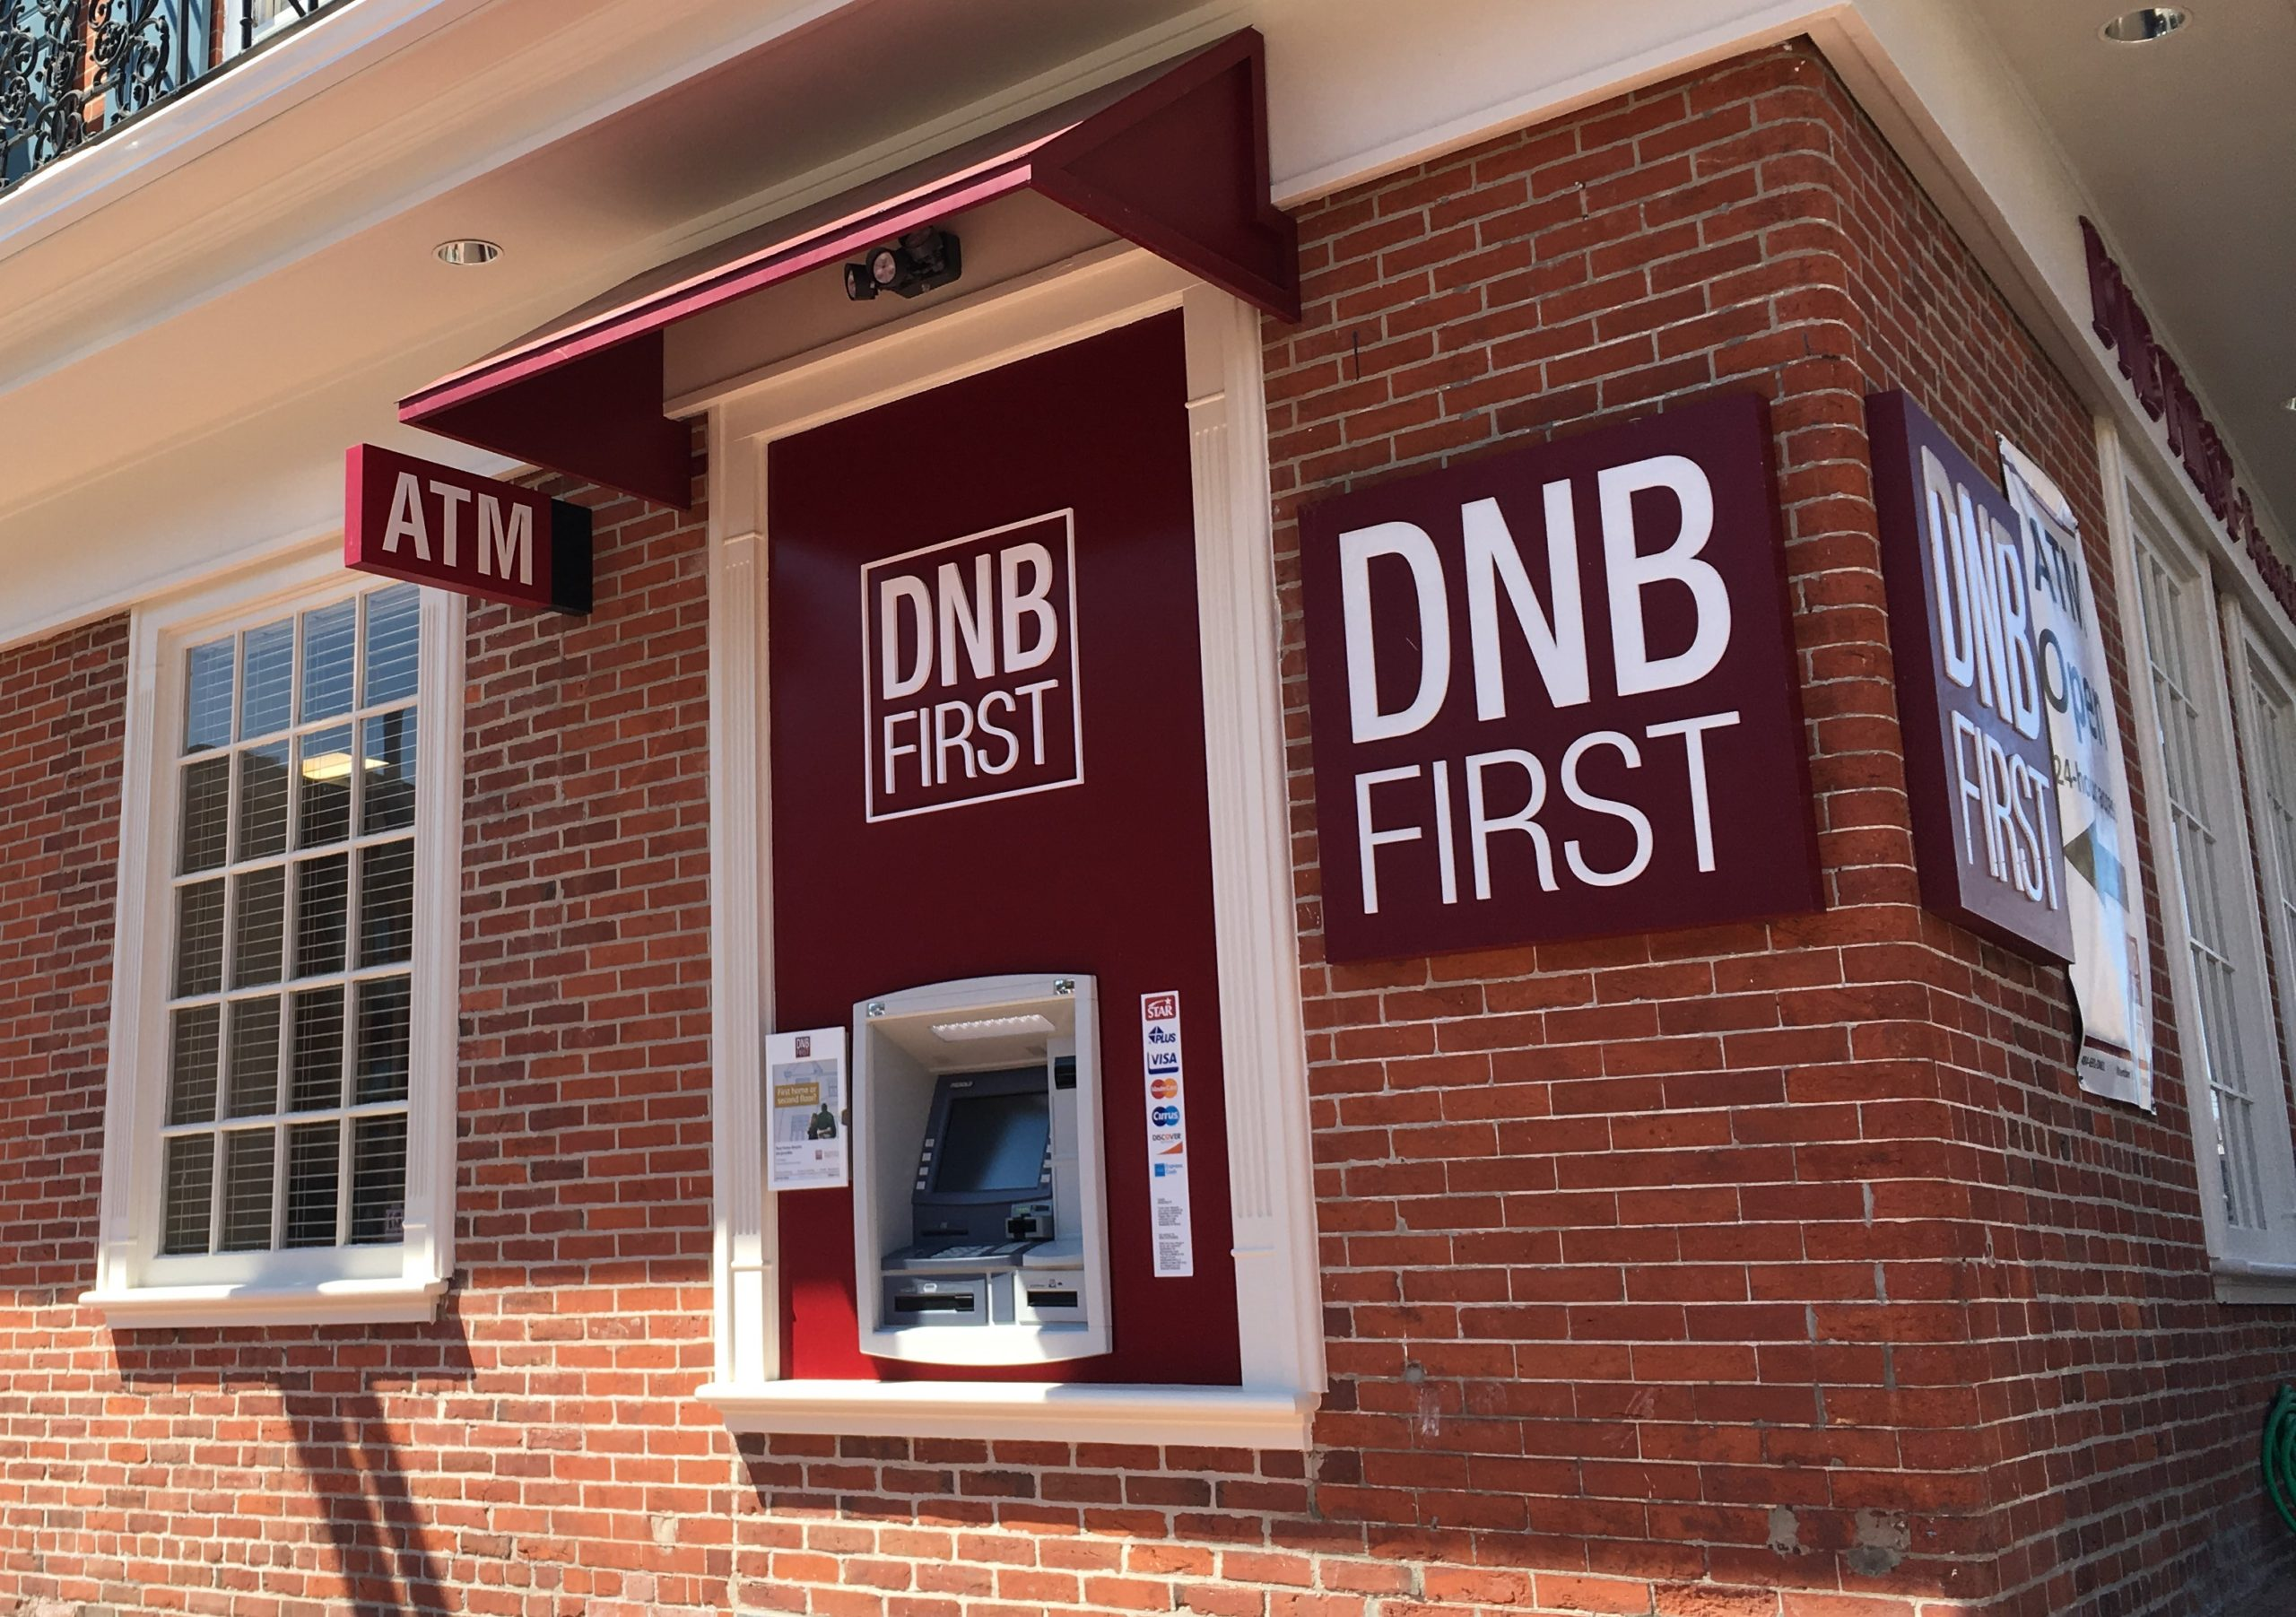 DNB First Increases CD Rates to Meet 'Needs, Investment Horizon of Every Saver'